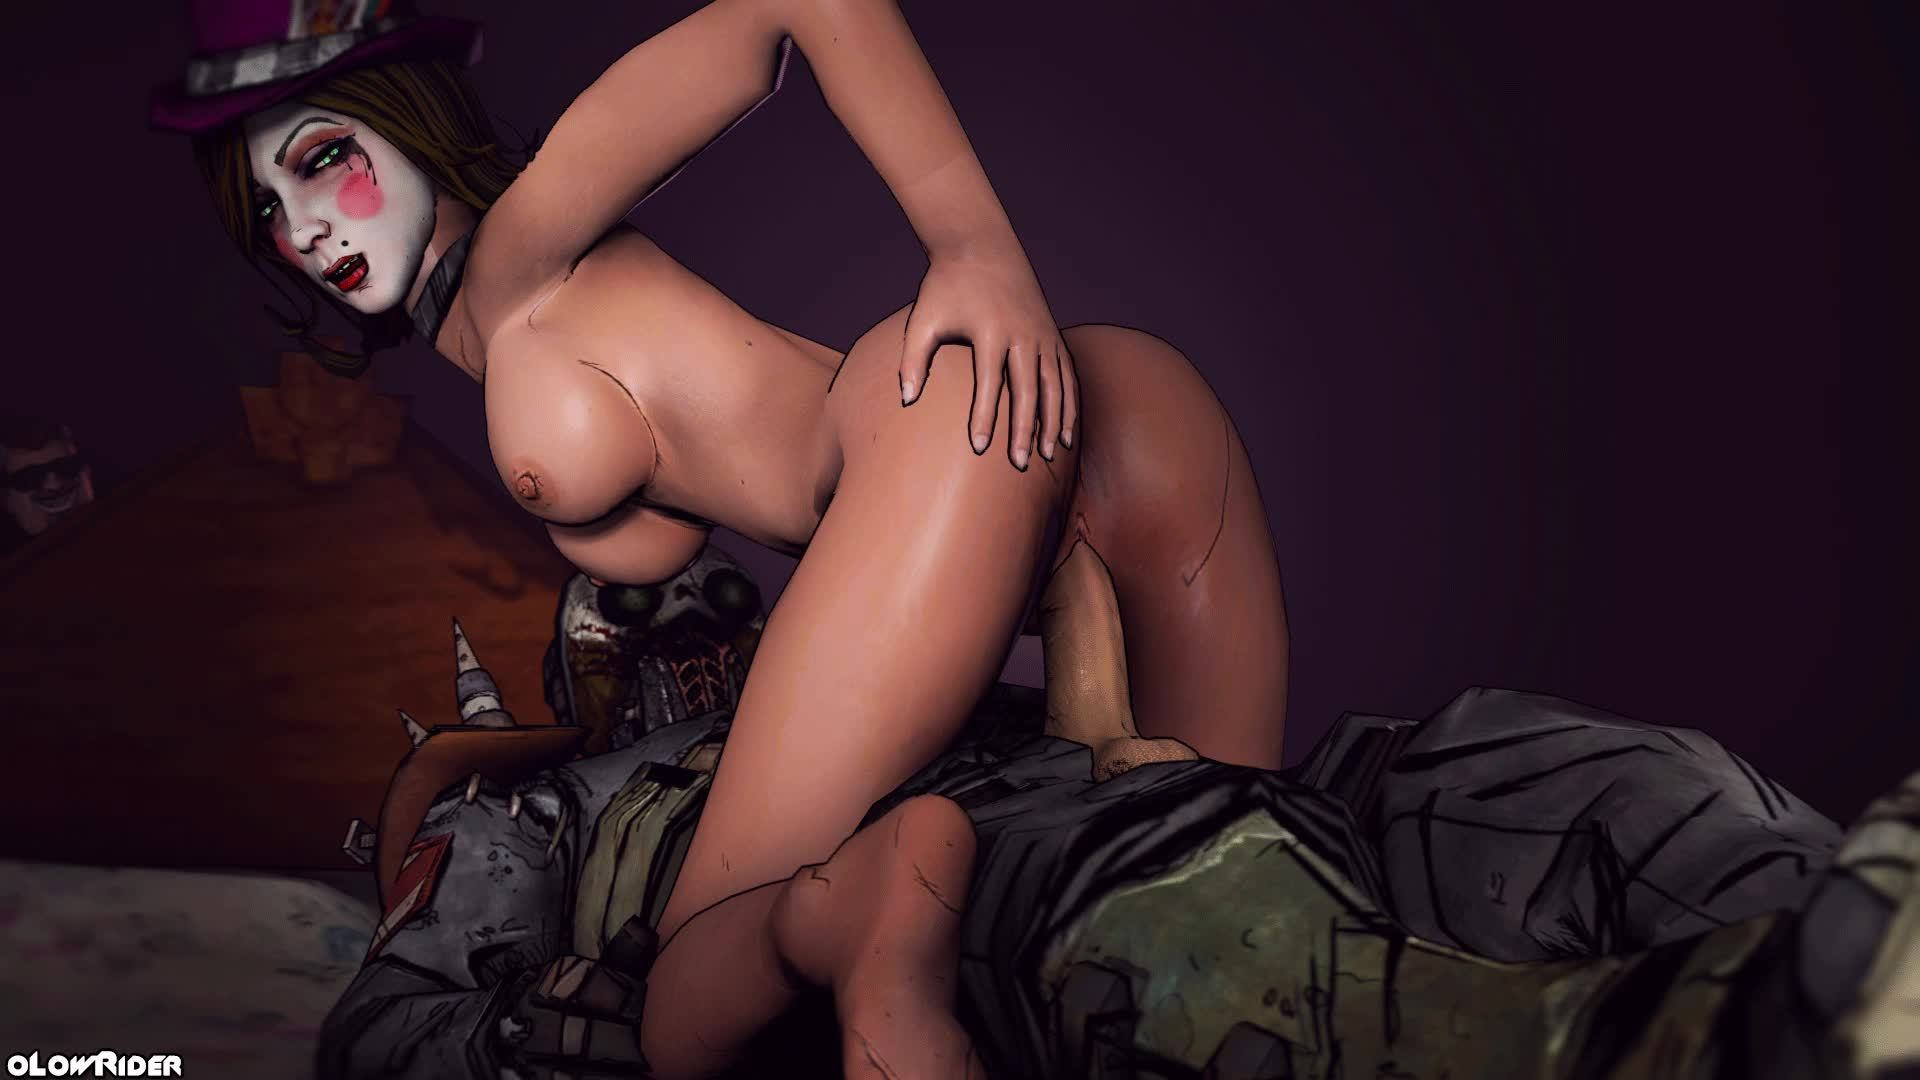 Borderlands sex porn videos hentai movies